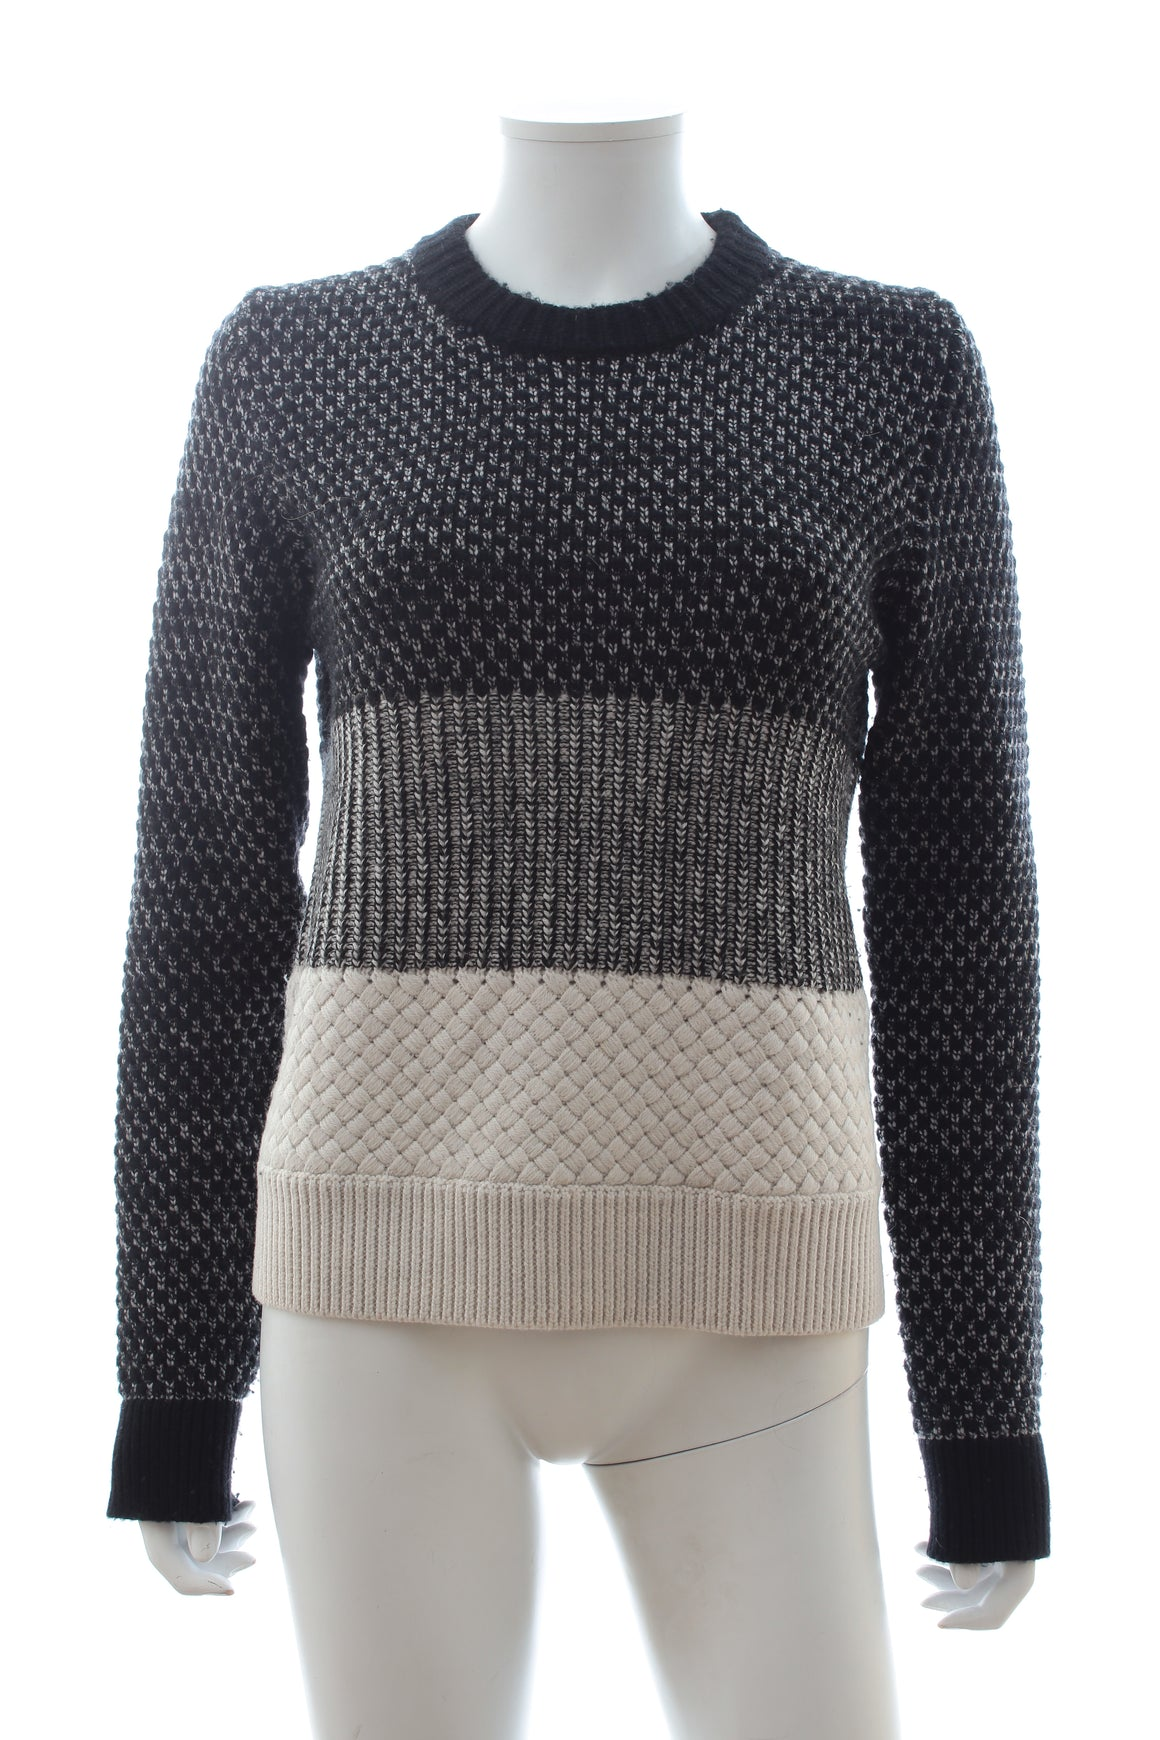 Proenza Schouler Wool, Cashmere and Silk-Blend Block Sweater